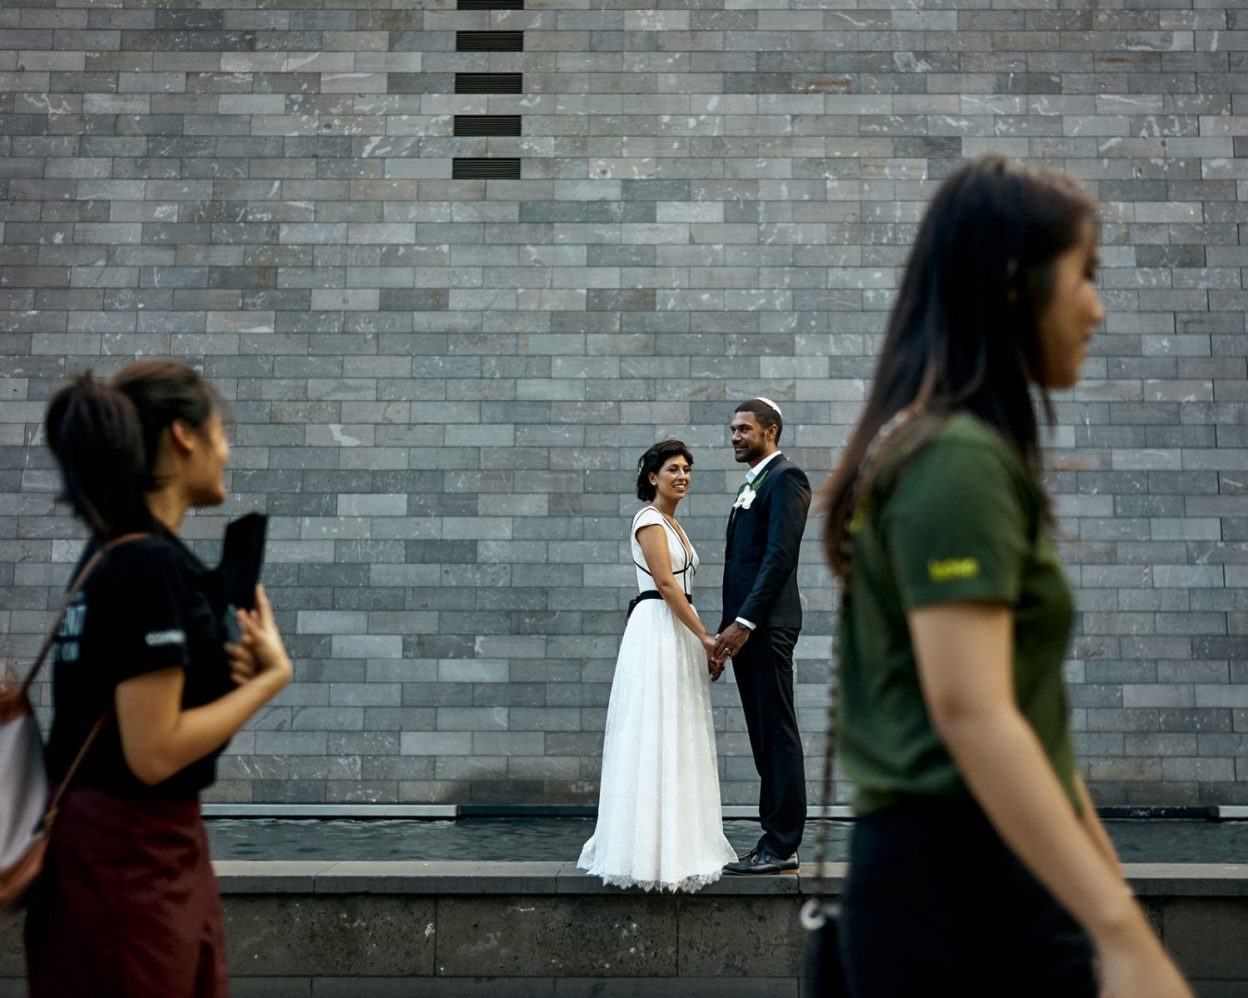 Ilana-michael-ngv-wedding-2019-edit-1600px